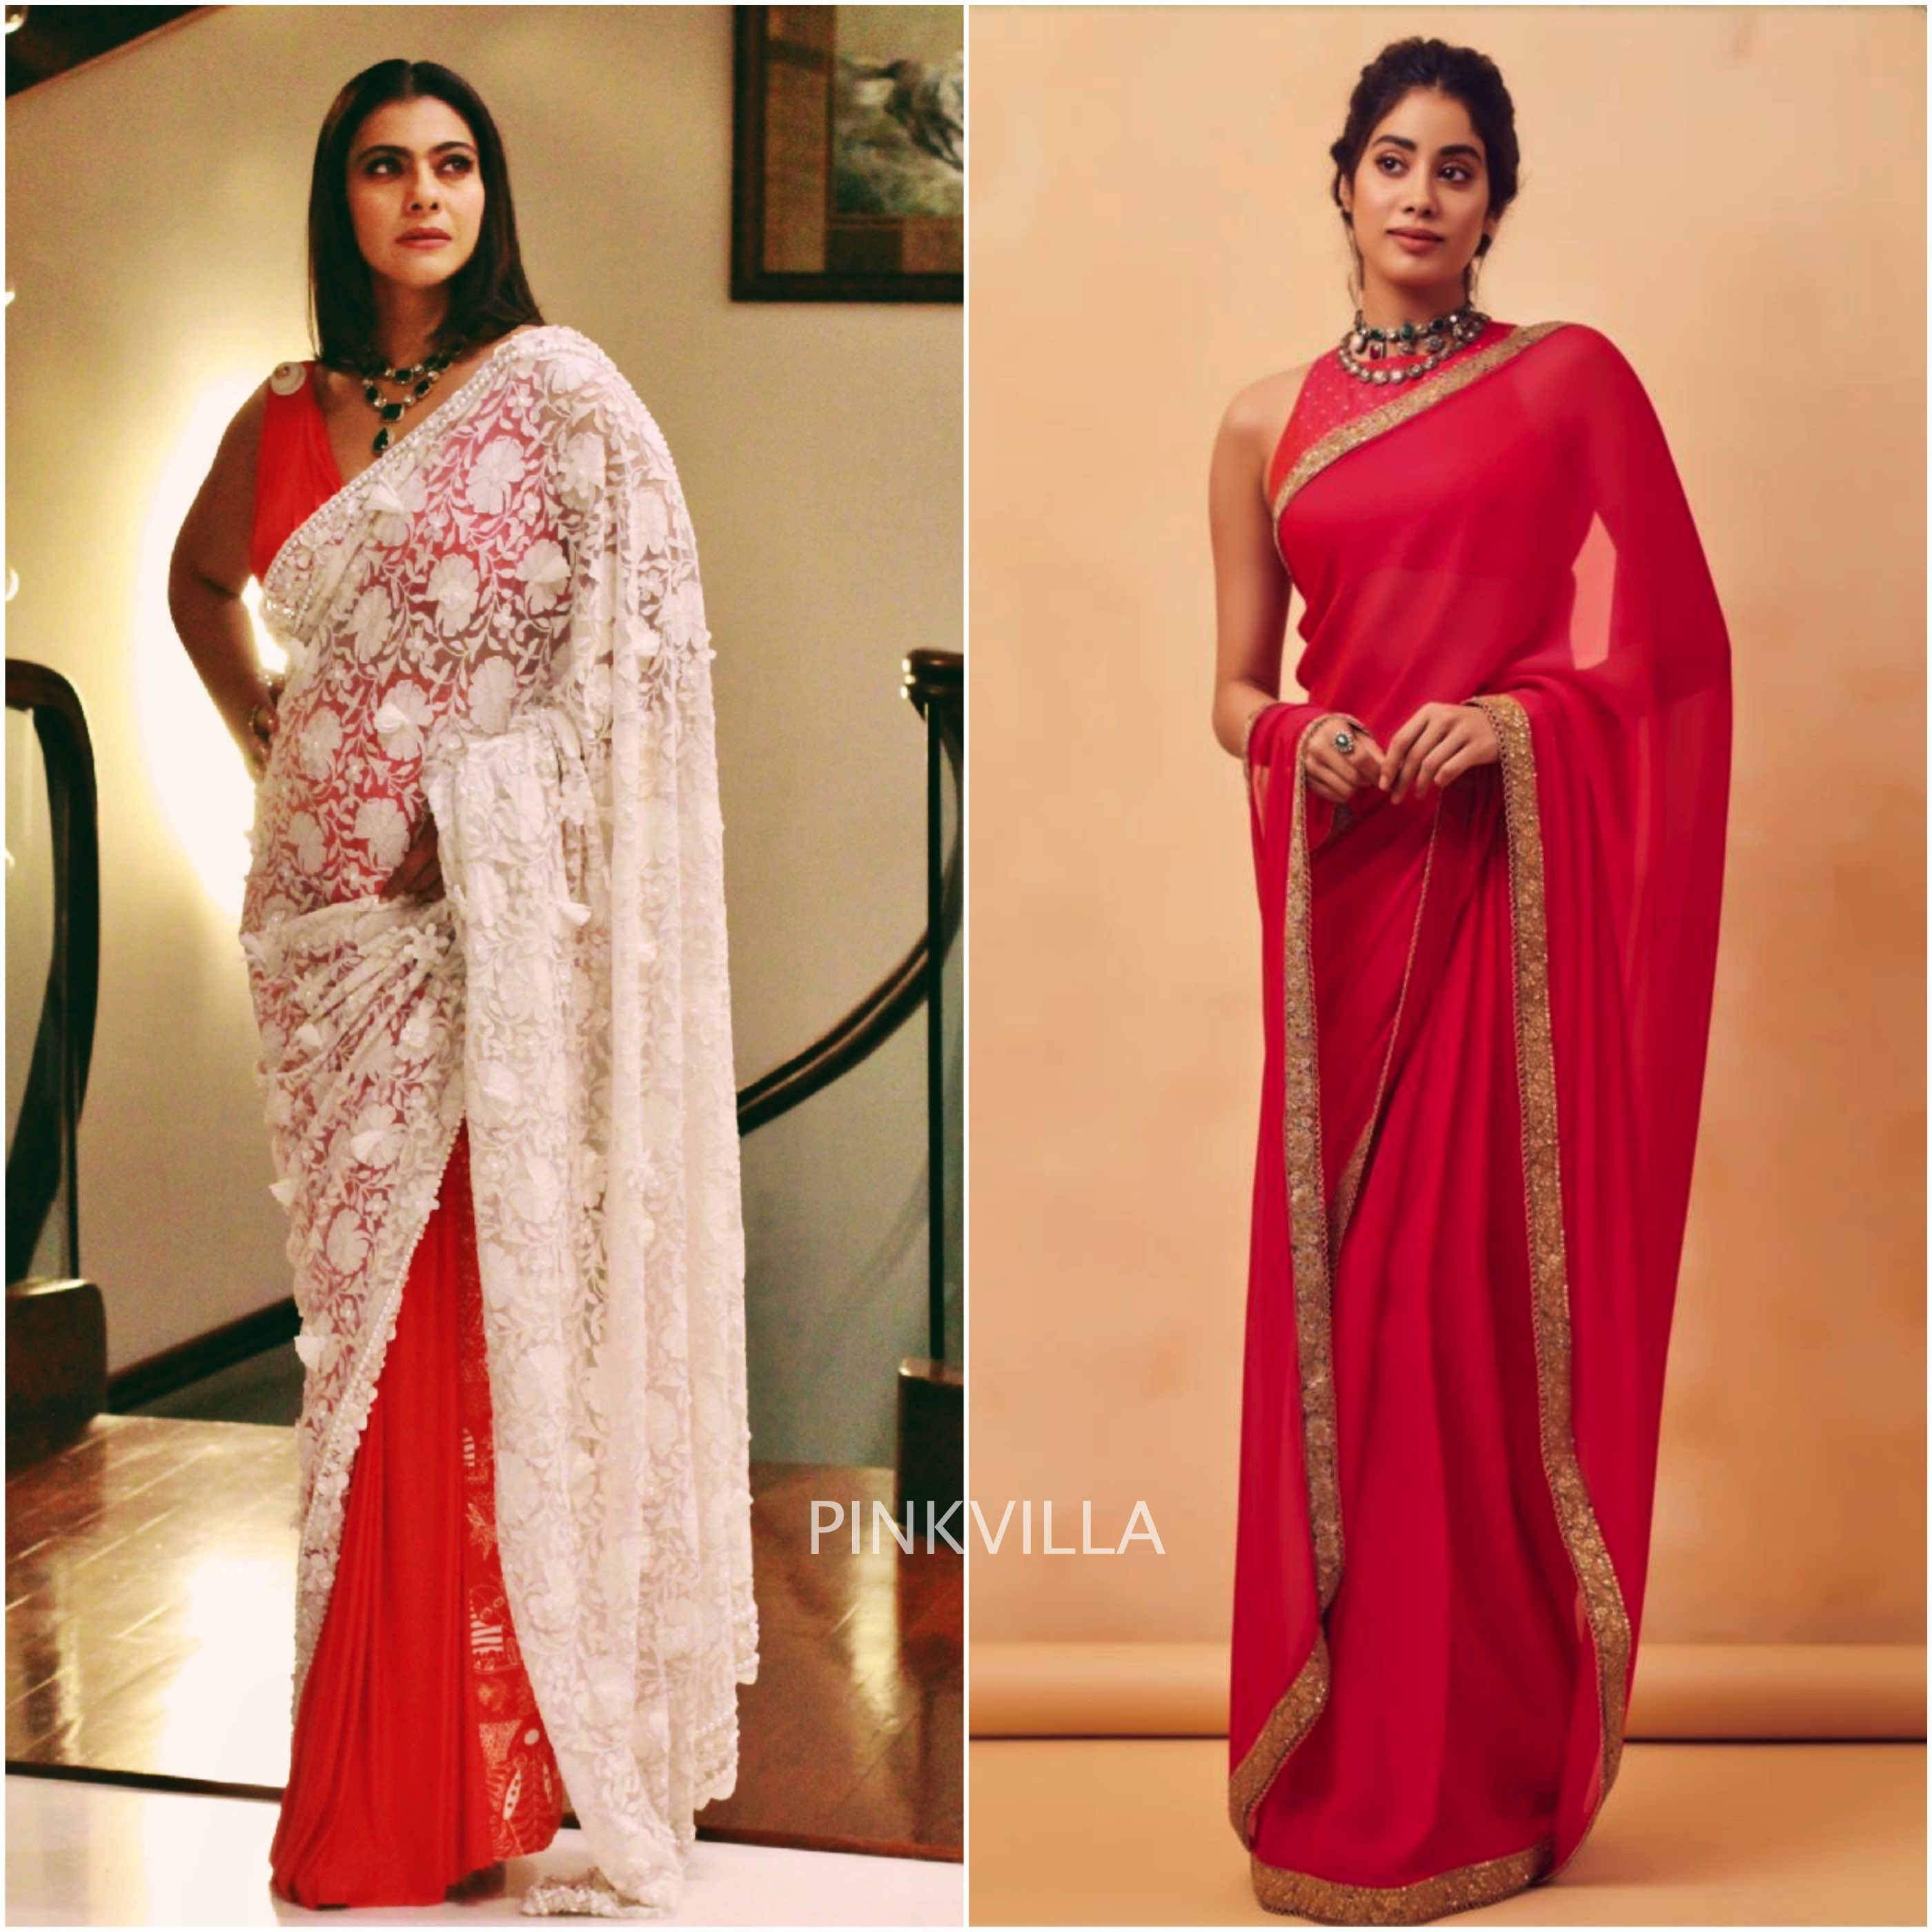 ae960a9500 Janhvi Kapoor and Kajol wear red sarees to an awards event : Yay or Nay? |  PINKVILLA